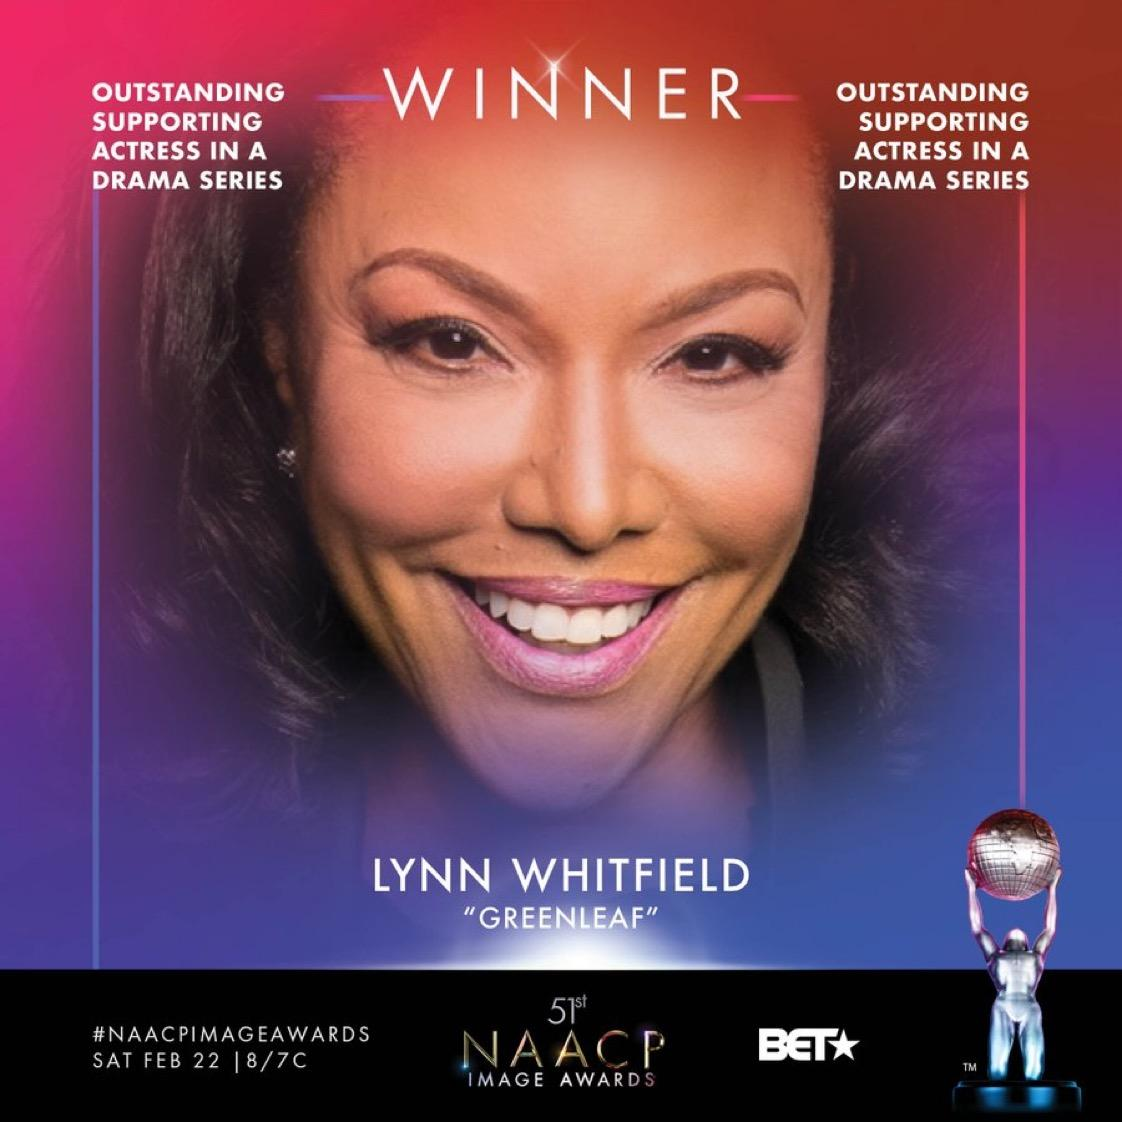 NCAAP Image Award Winner Lynn Whitfield